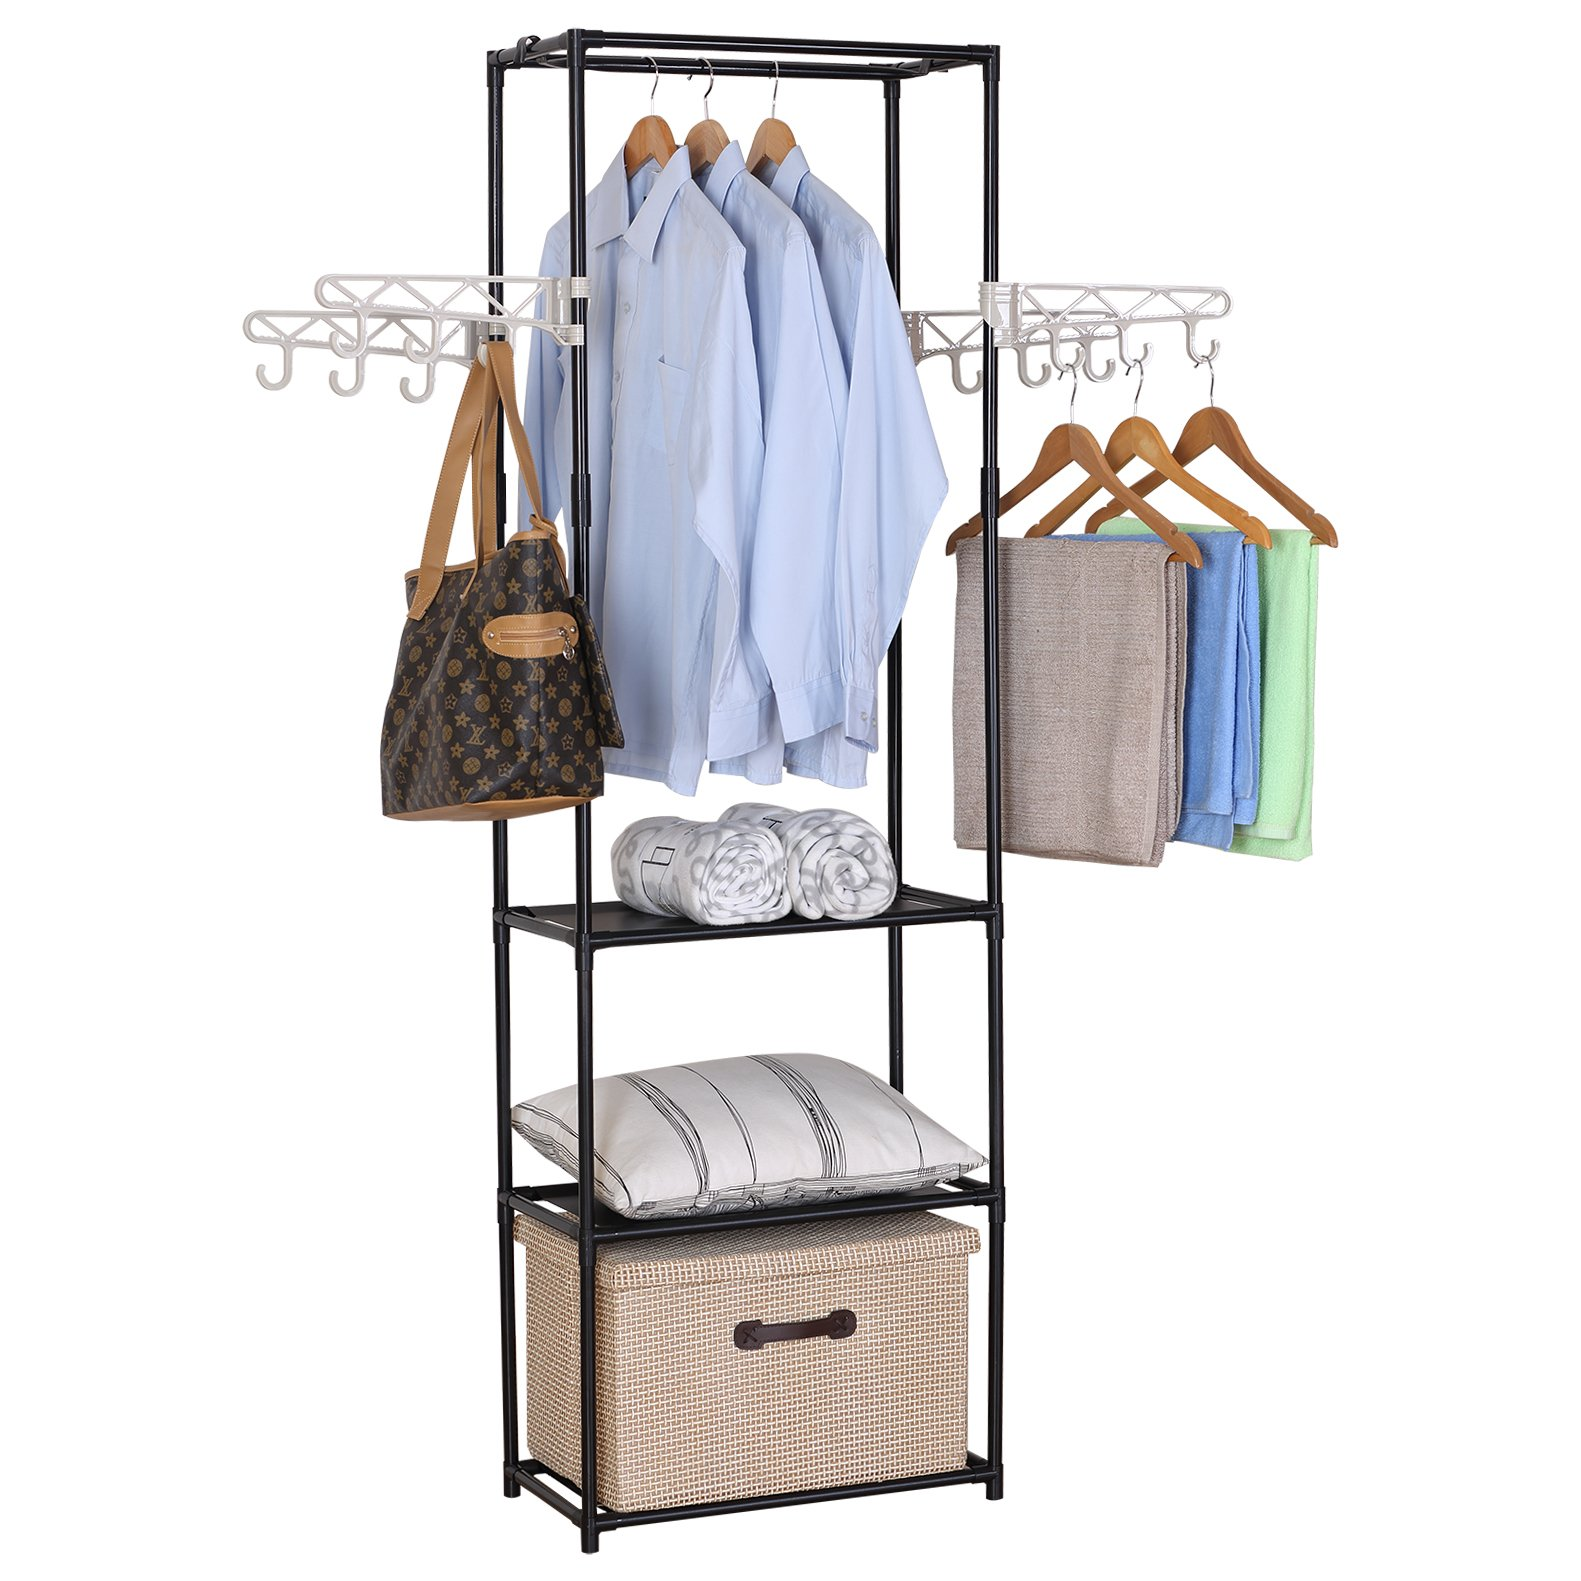 WOLTU Double-rail Rod Clothing Garment Rack Hanging with 4 Hooks 3 Tiers Shelves Freestanding Closet Shoe Organizer Black